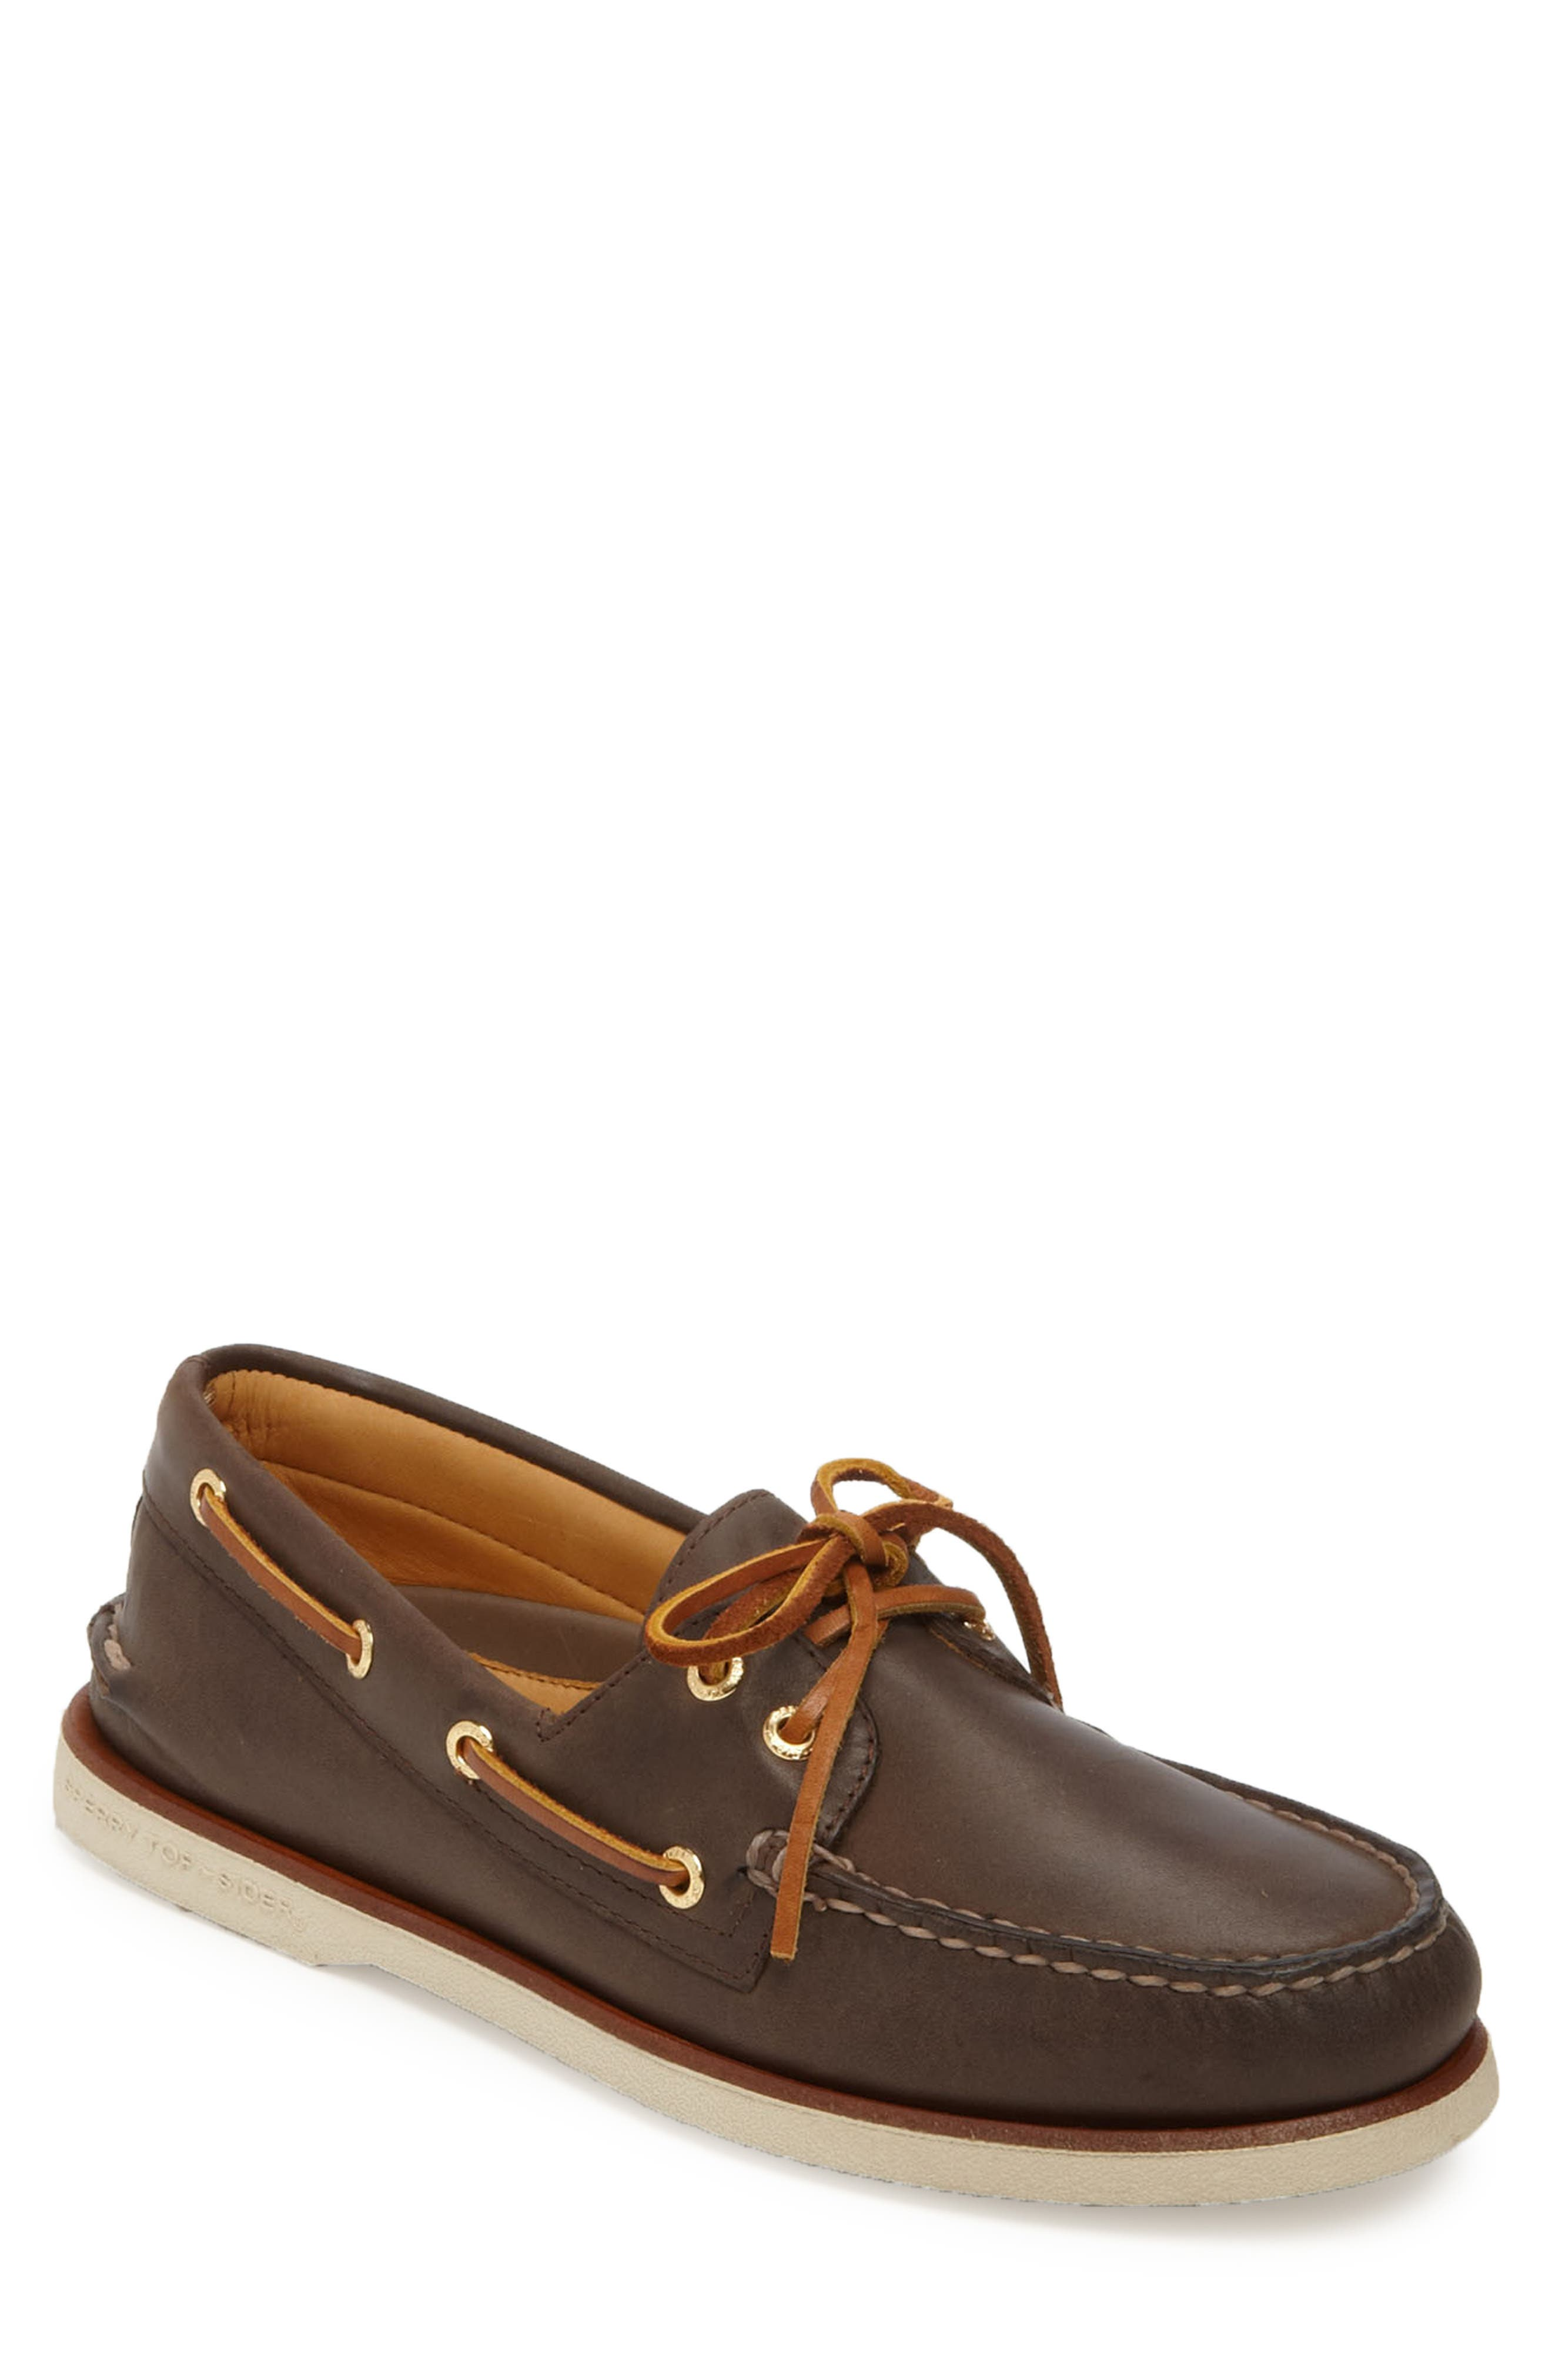 SPERRY 'Gold Cup - Authentic Original' Boat Shoe, Main, color, DARK BROWN LEATHER